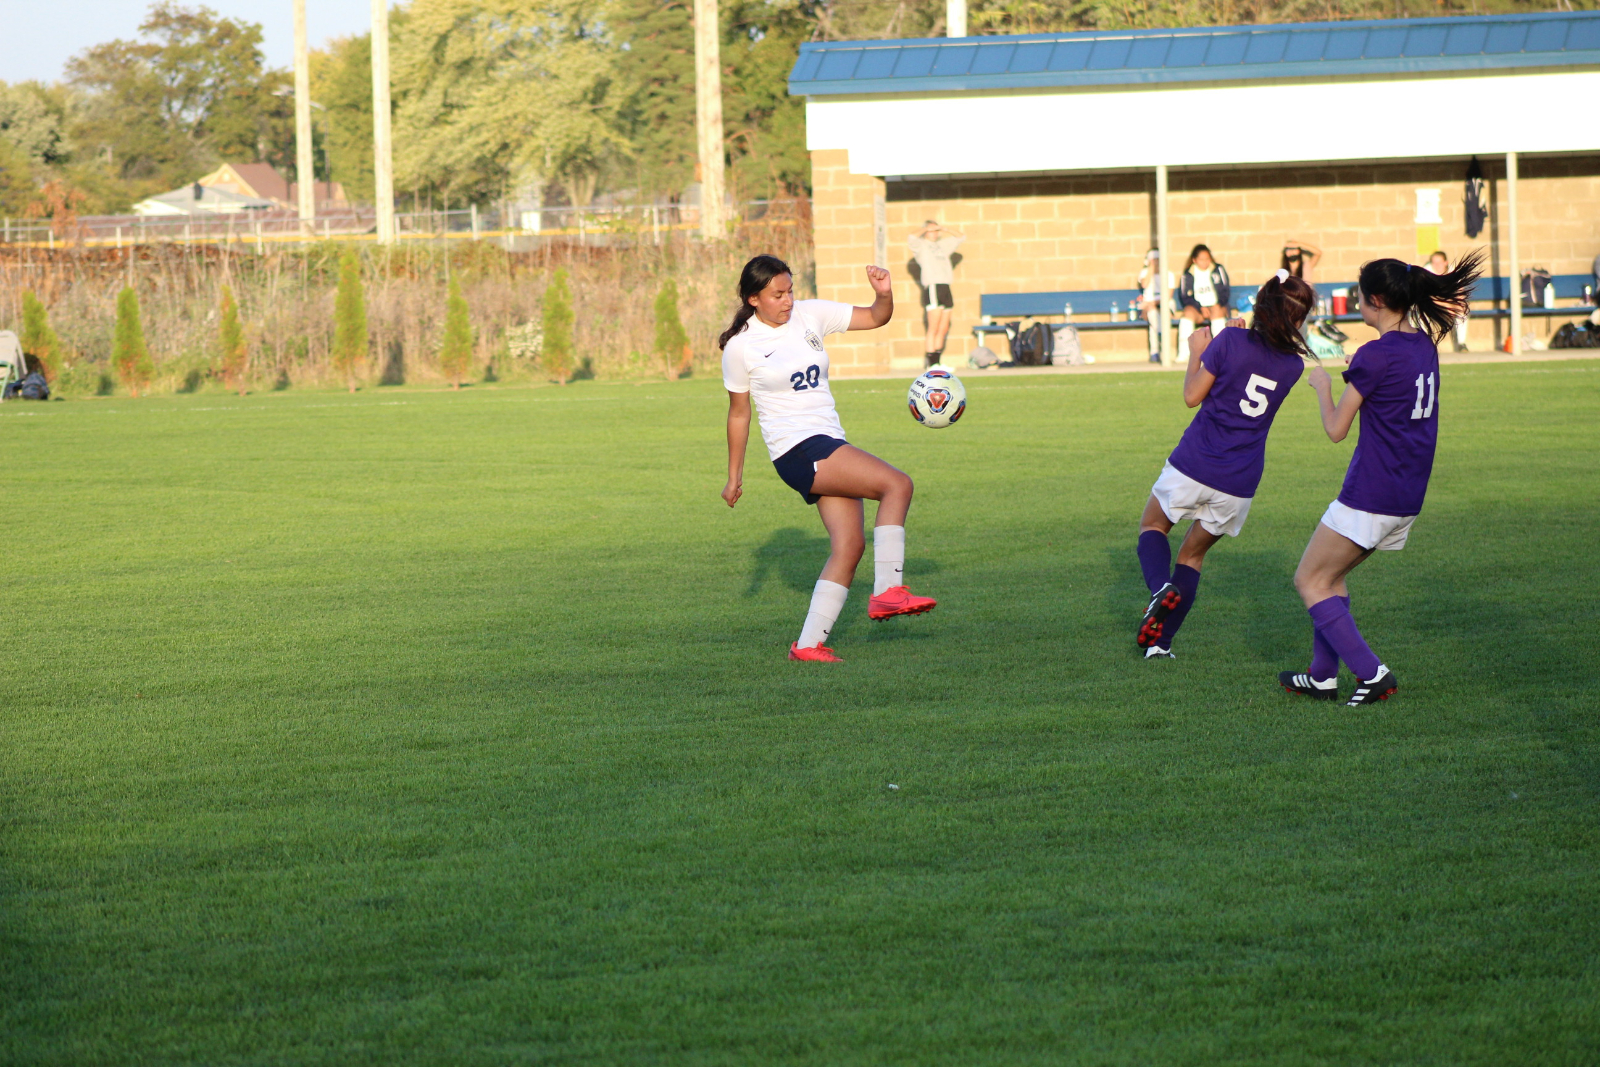 Girls Soccer @ IHSAA Sectional vs. South Bend Clay 10/8/20  (Photo Gallery)